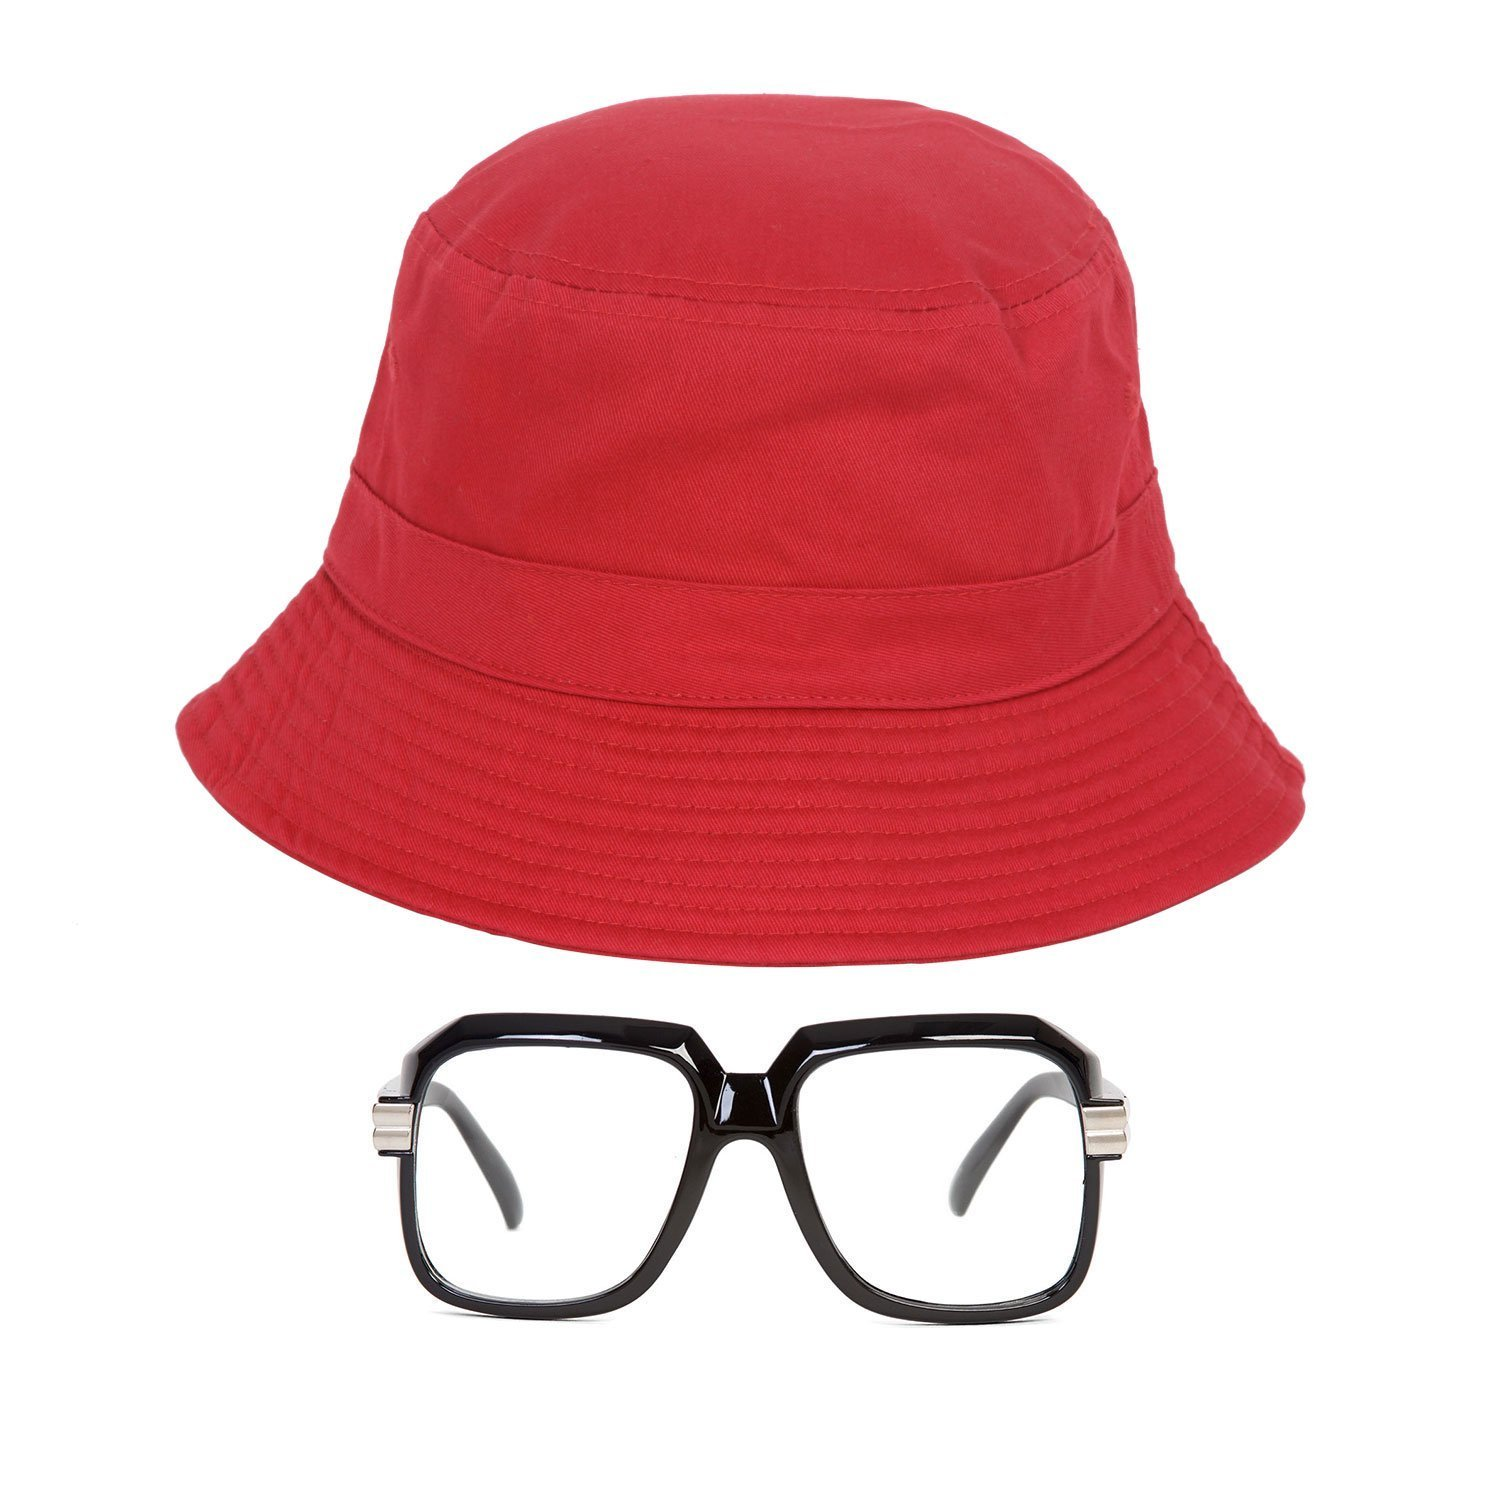 Gravity Trading 80s/90s Hip-Hop Costume Kit (Bucket Hat + Old School Squared Glasses) Red - S/M